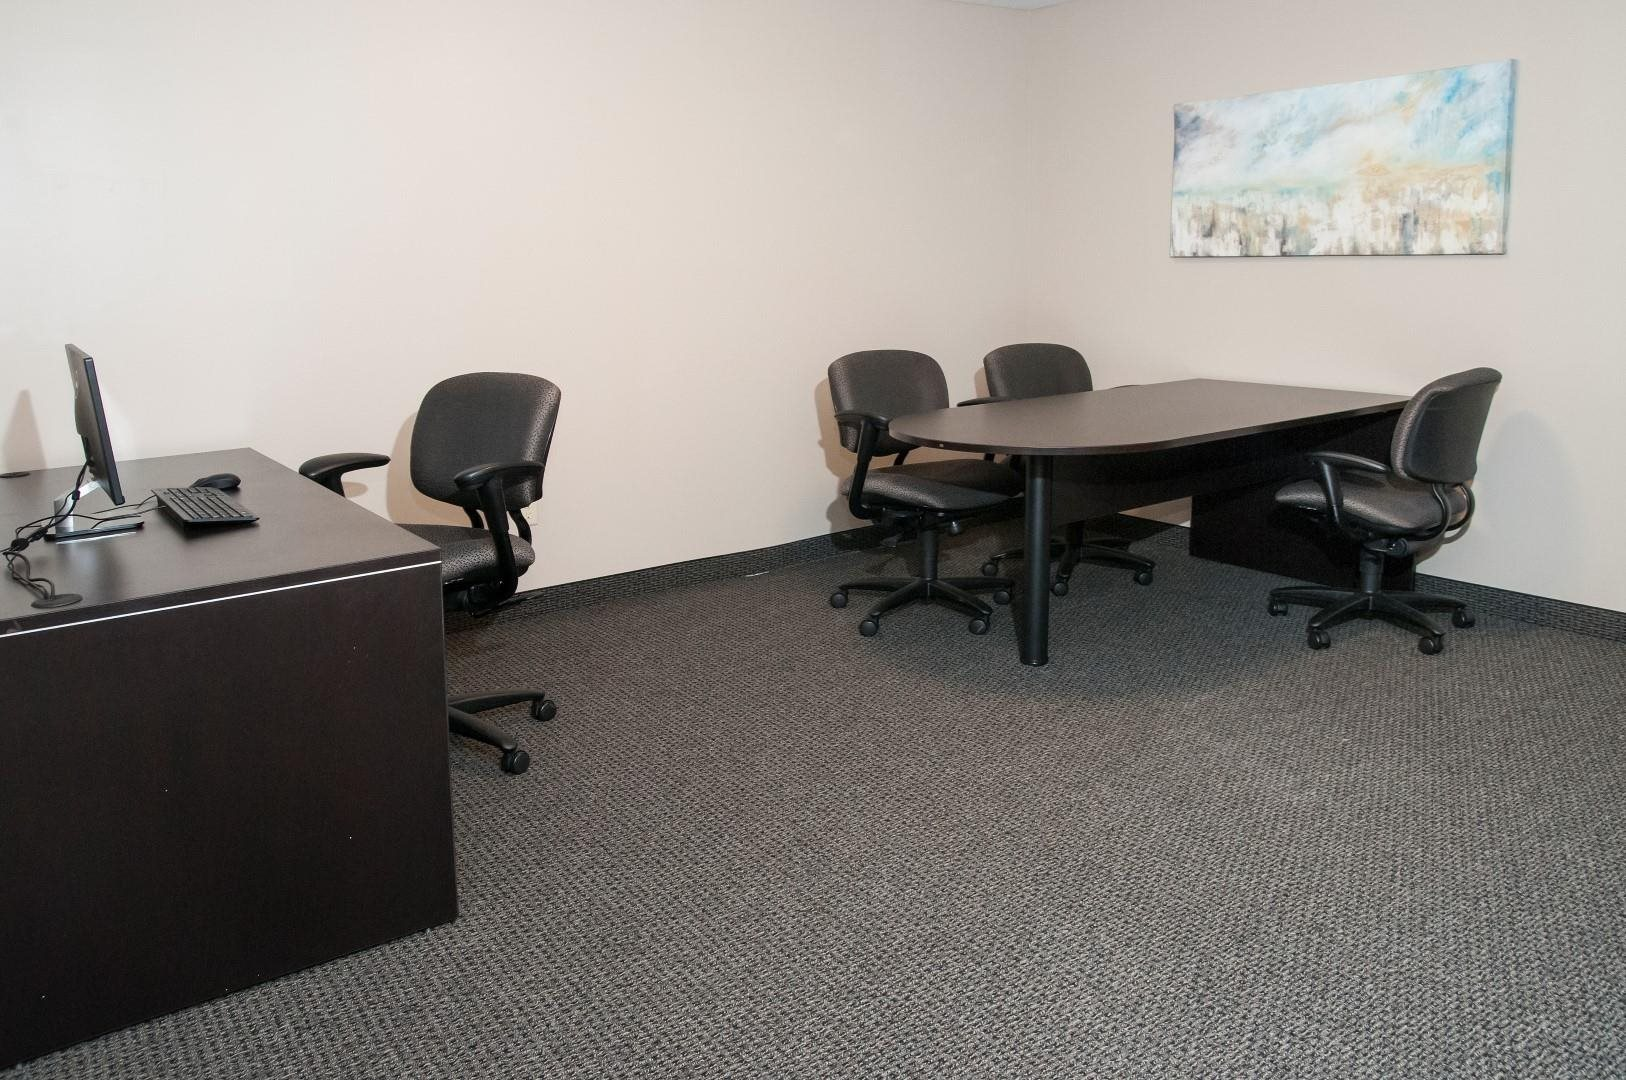 Office Space with Office Chairs, Work Tables and Computers at Compass Pointe in New Hope, MN